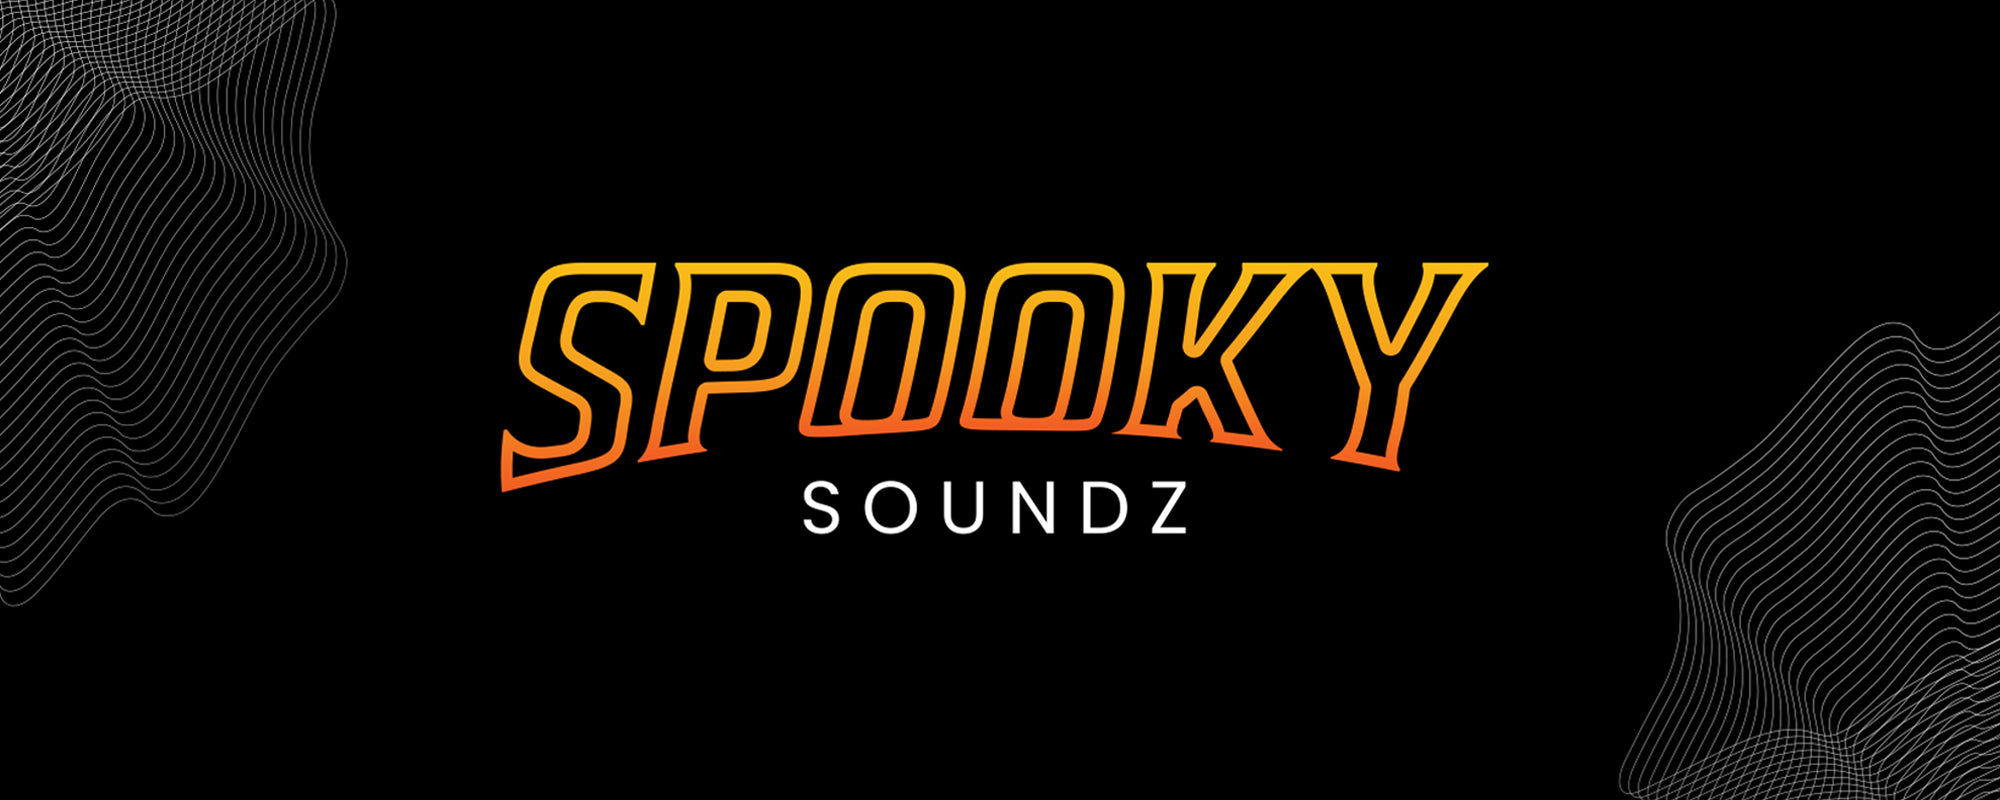 Spookyz Sounds banner graphic